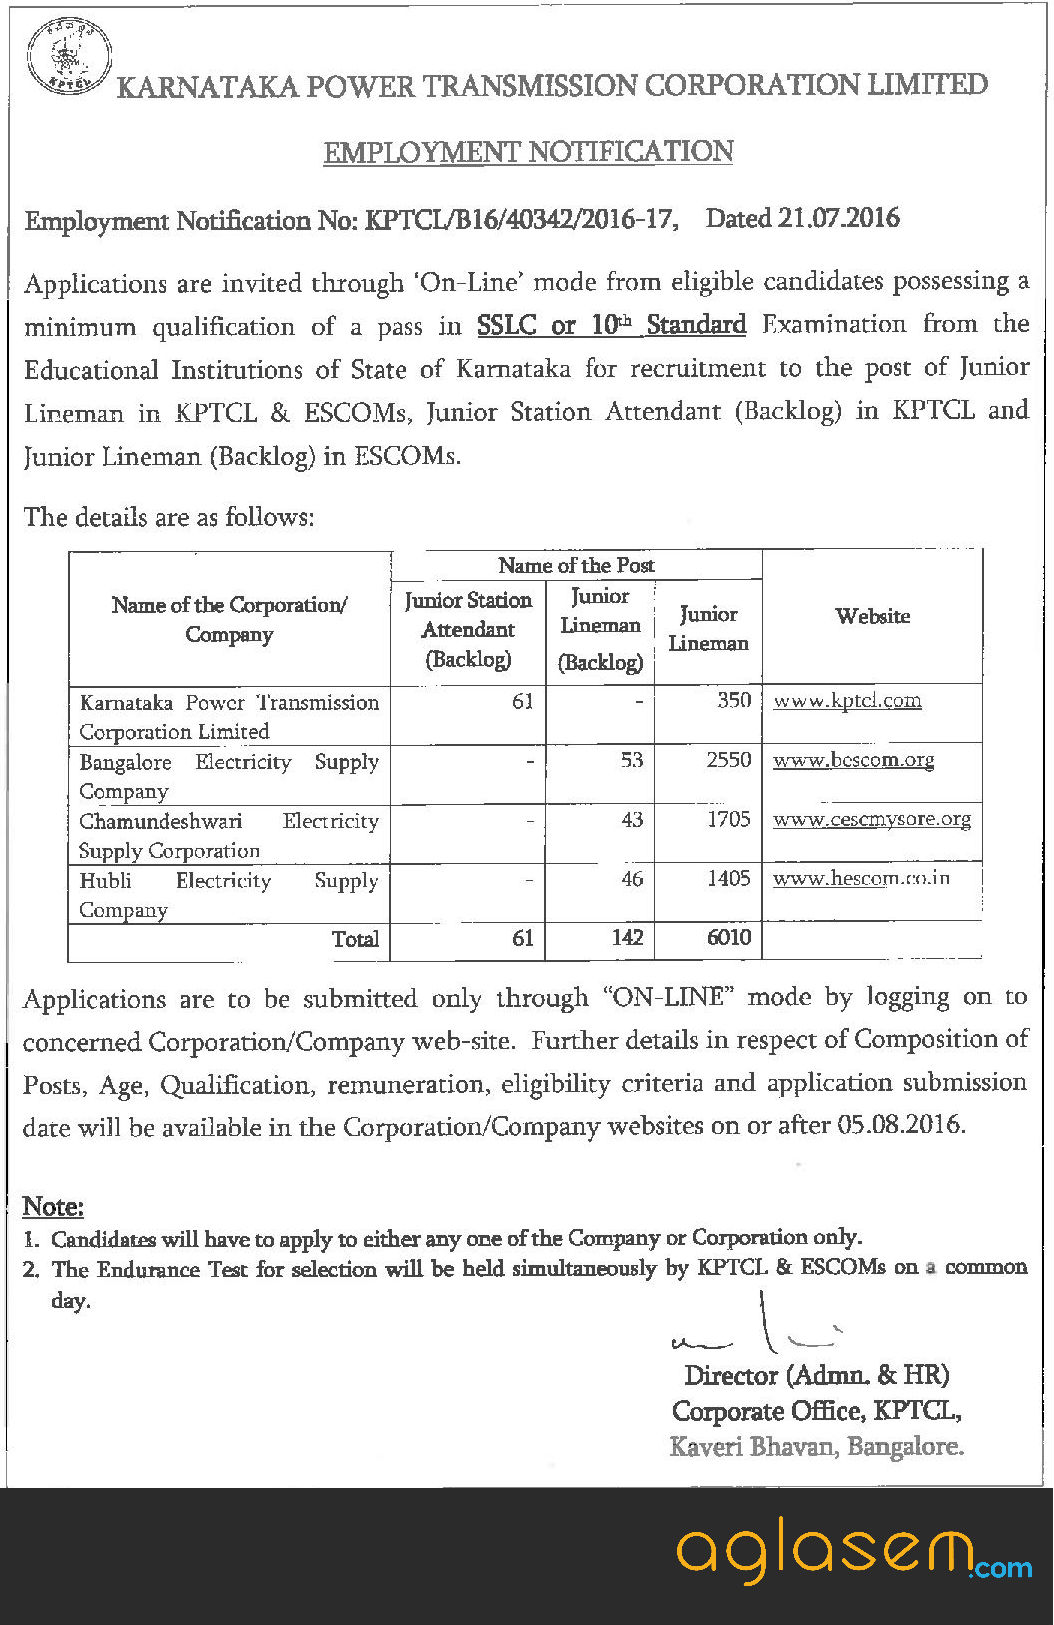 KPTCL JLM JSA Recruitment 2016